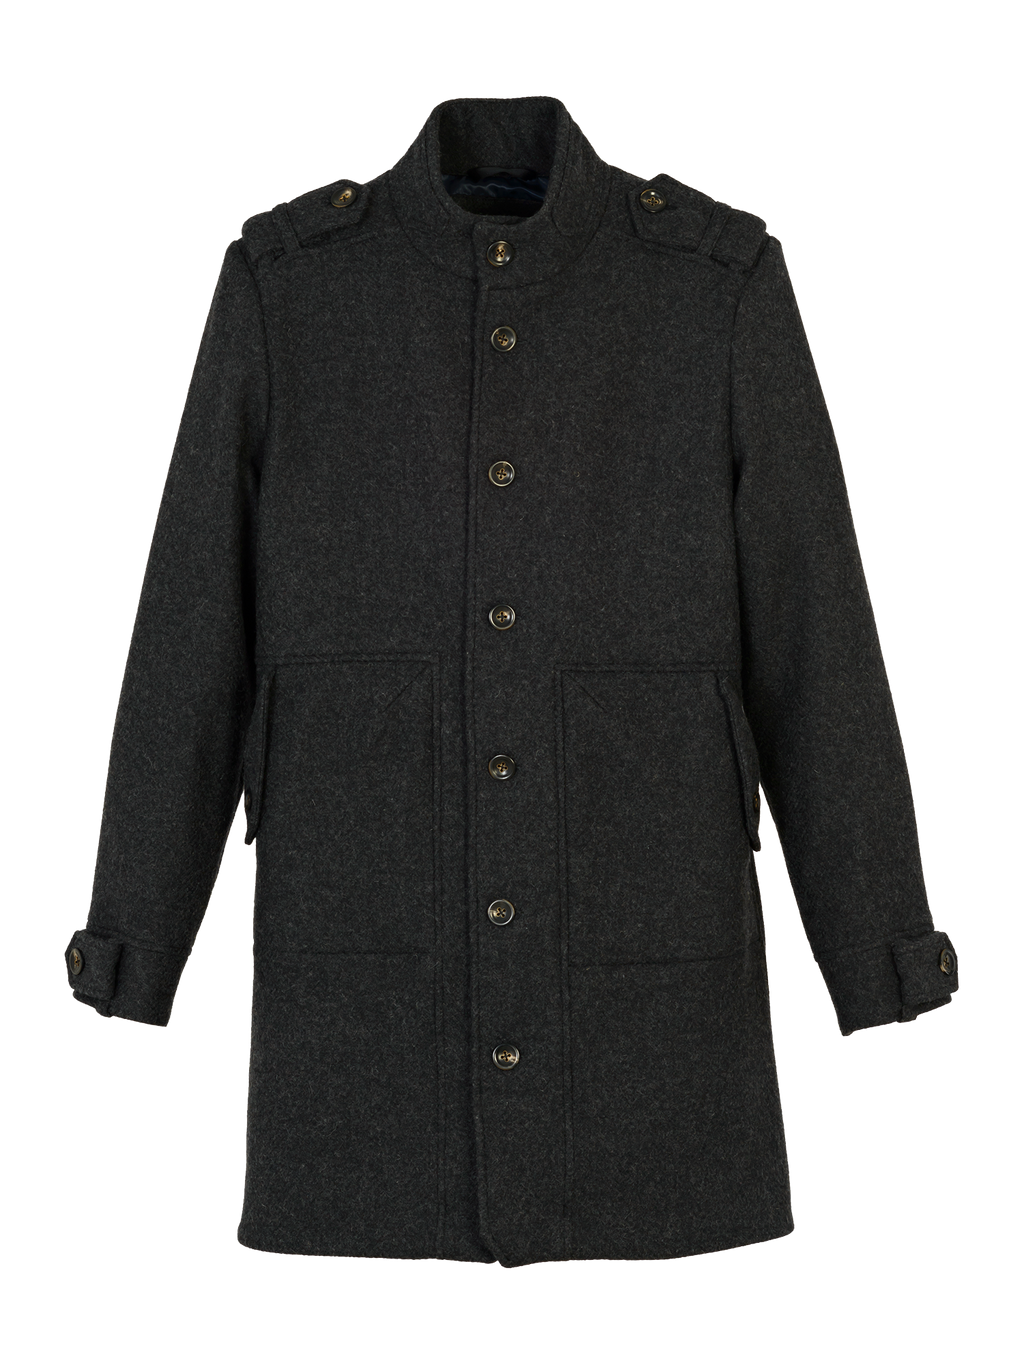 Mens woolcoat K401 ARES